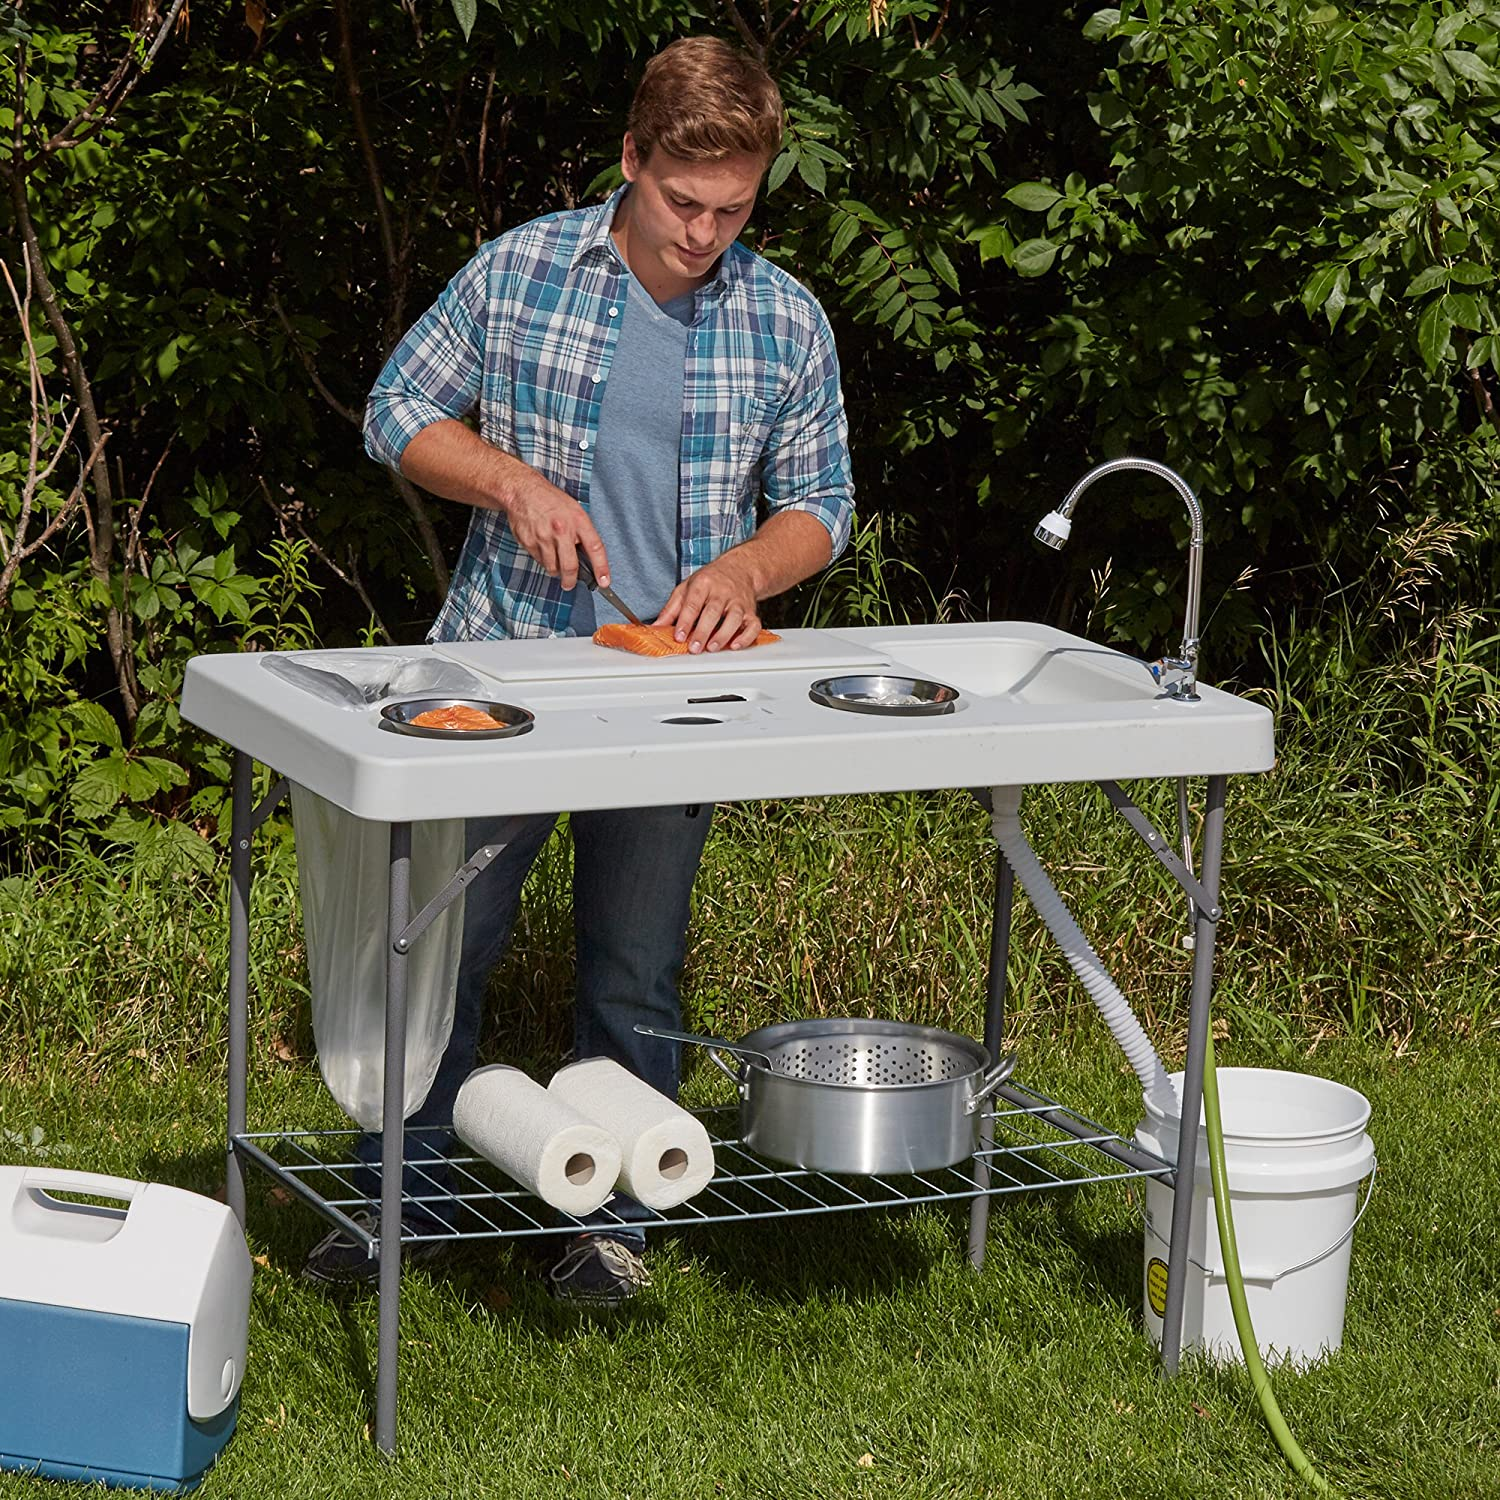 Best Fish Cleaning Tables 2021 Reviews 1